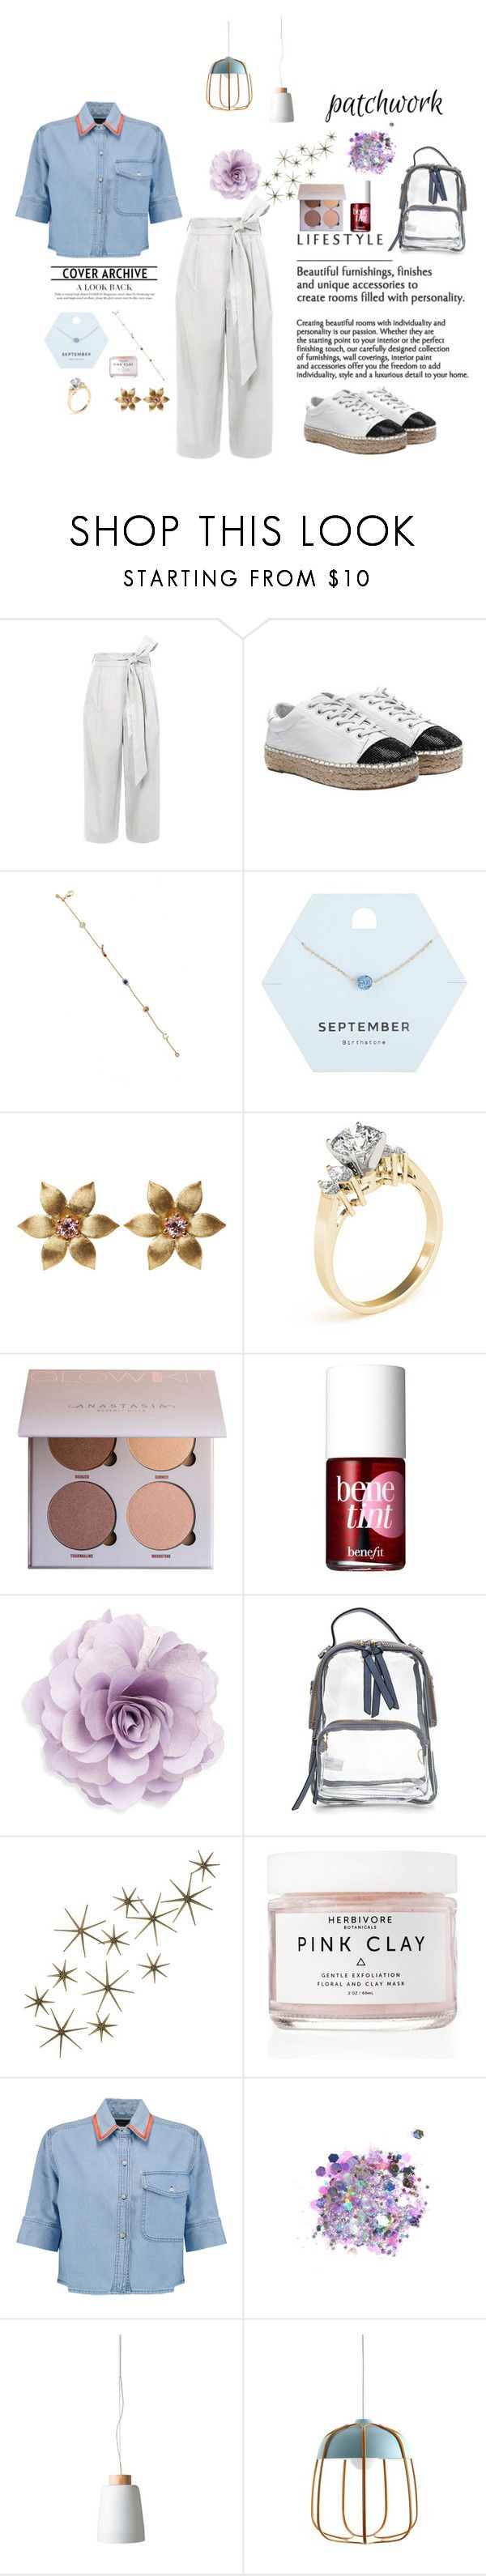 """Untitled #26"" by amala8527 ❤ liked on Polyvore featuring TIBI, Kendall + Kylie, Loquet, Miss Selfridge, Benefit, Cara, Global Views, Herbivore, Être Cécile and The Gypsy Shrine"